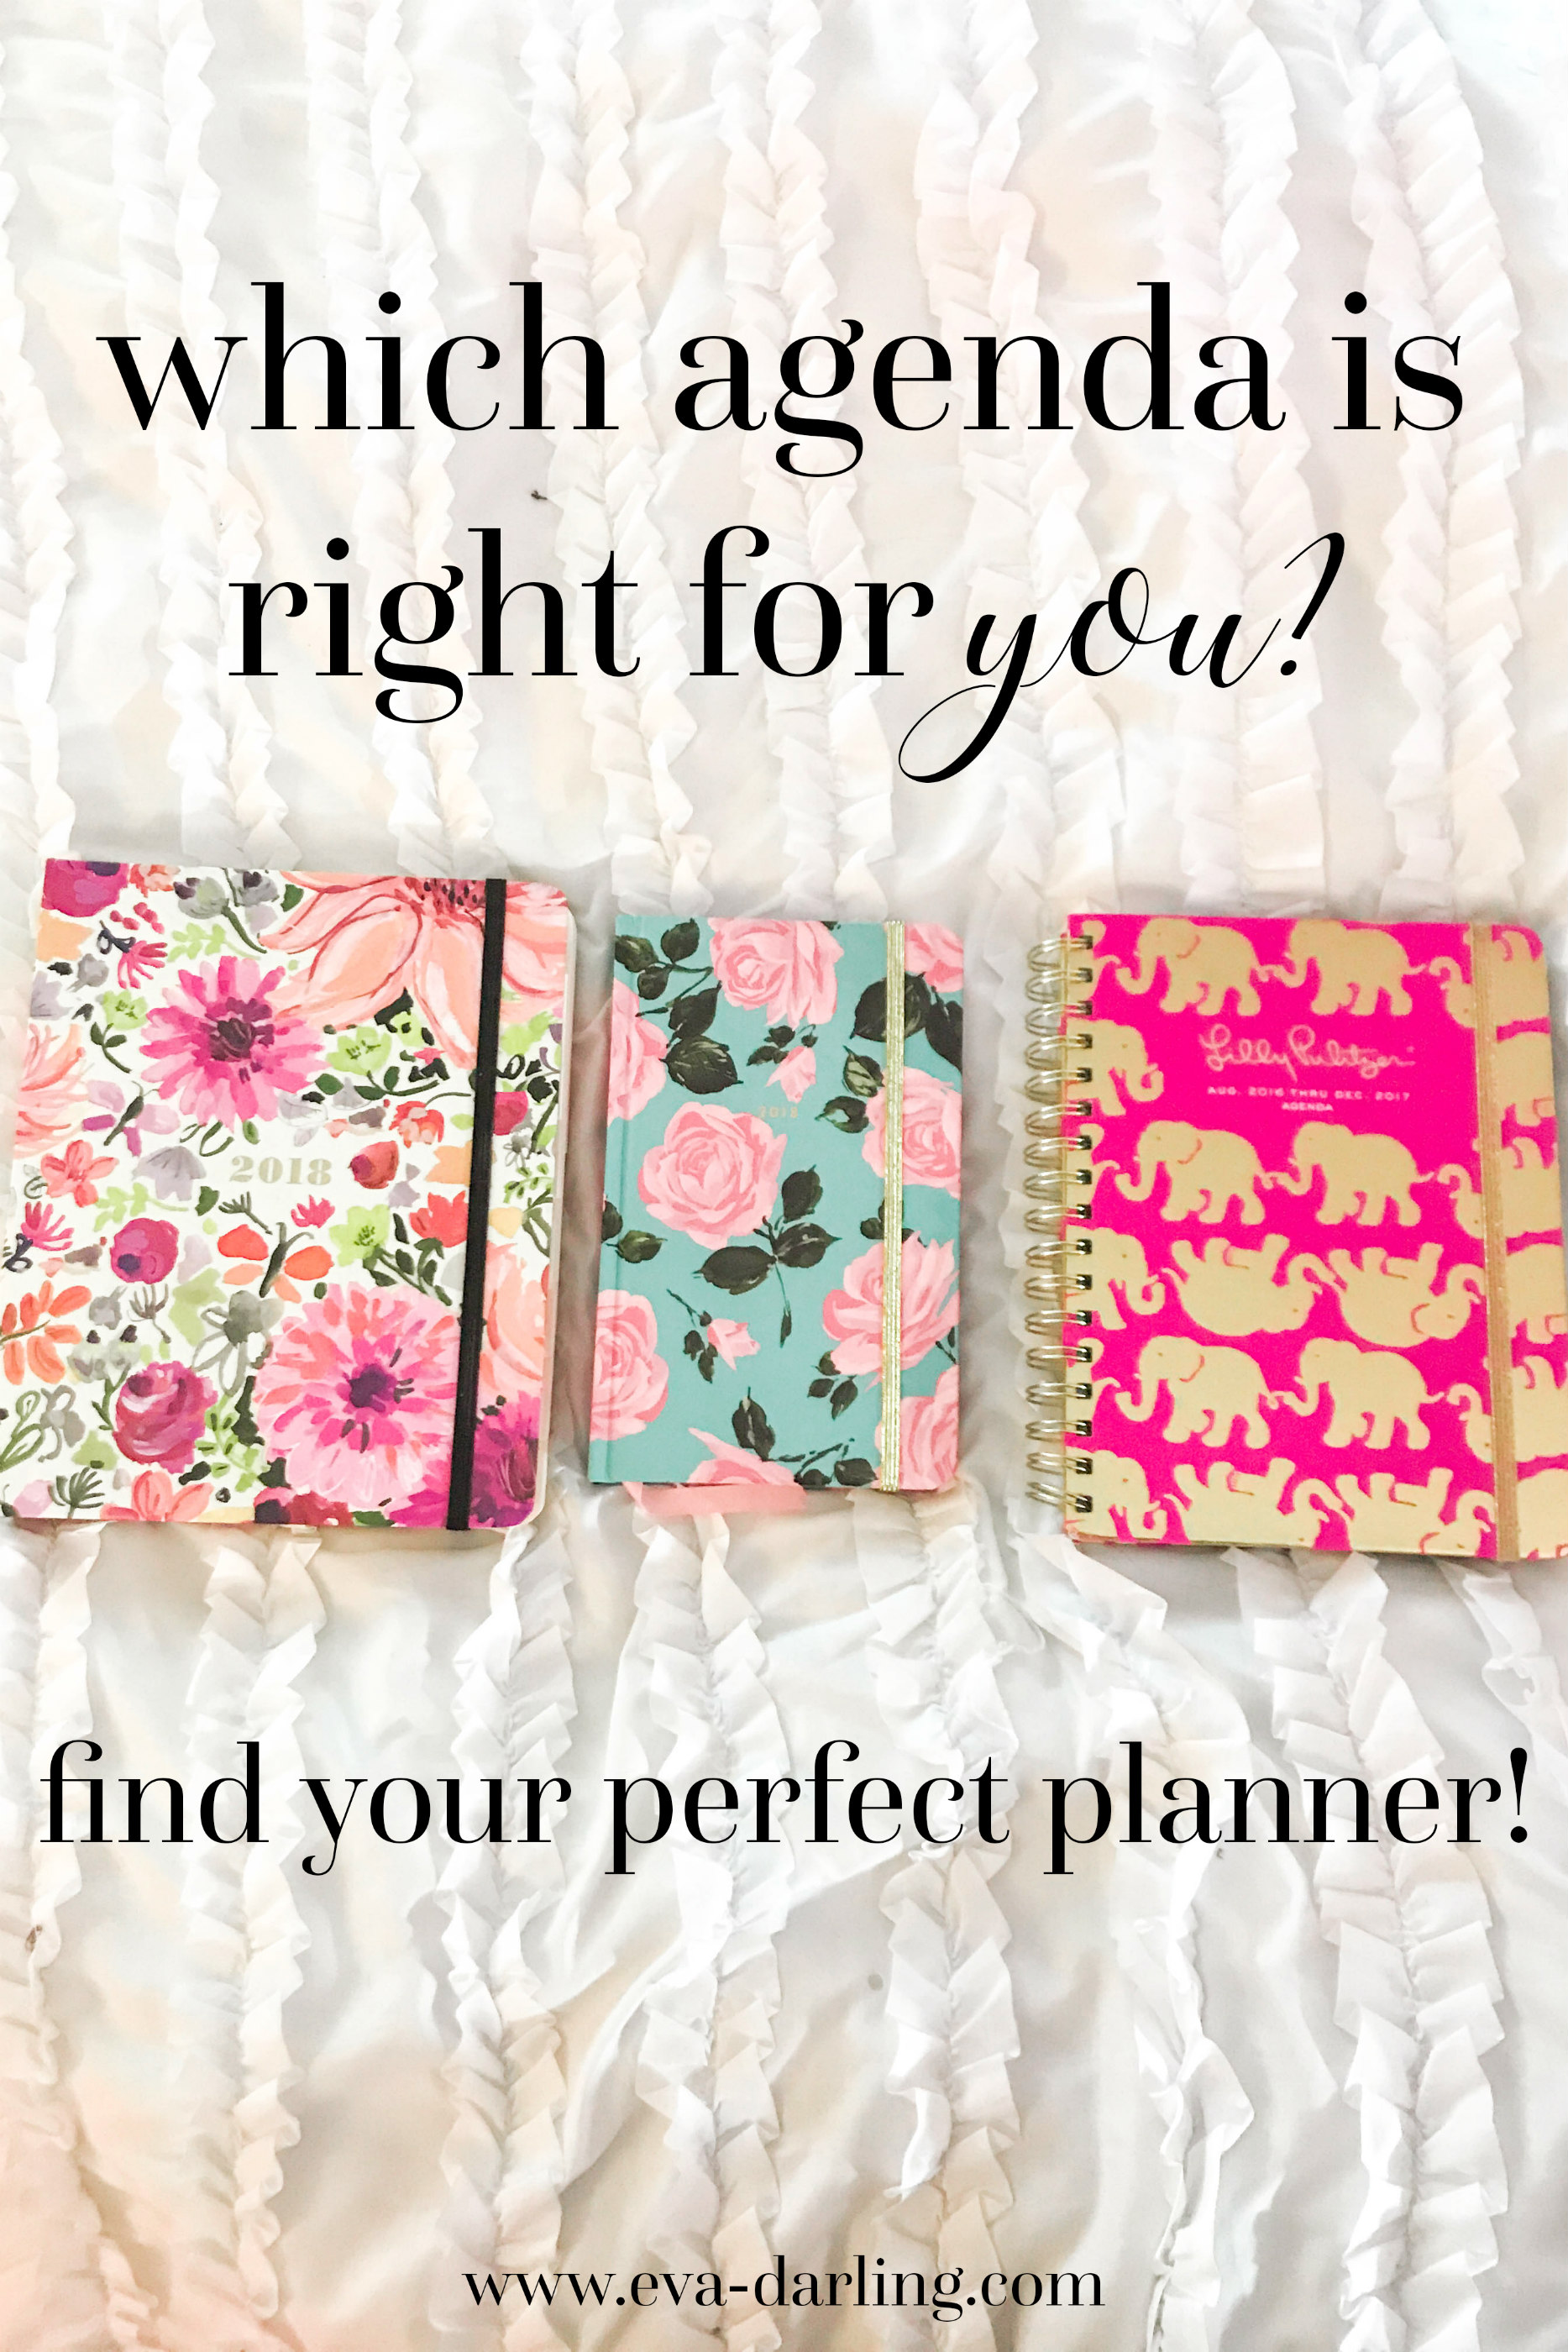 lilly pulitzer kate spade bando shop agenda planner organization elephant print pink roses on blue background with green leaves watercolor orange and magenta floral flower pattern on white duvet comforter with black text